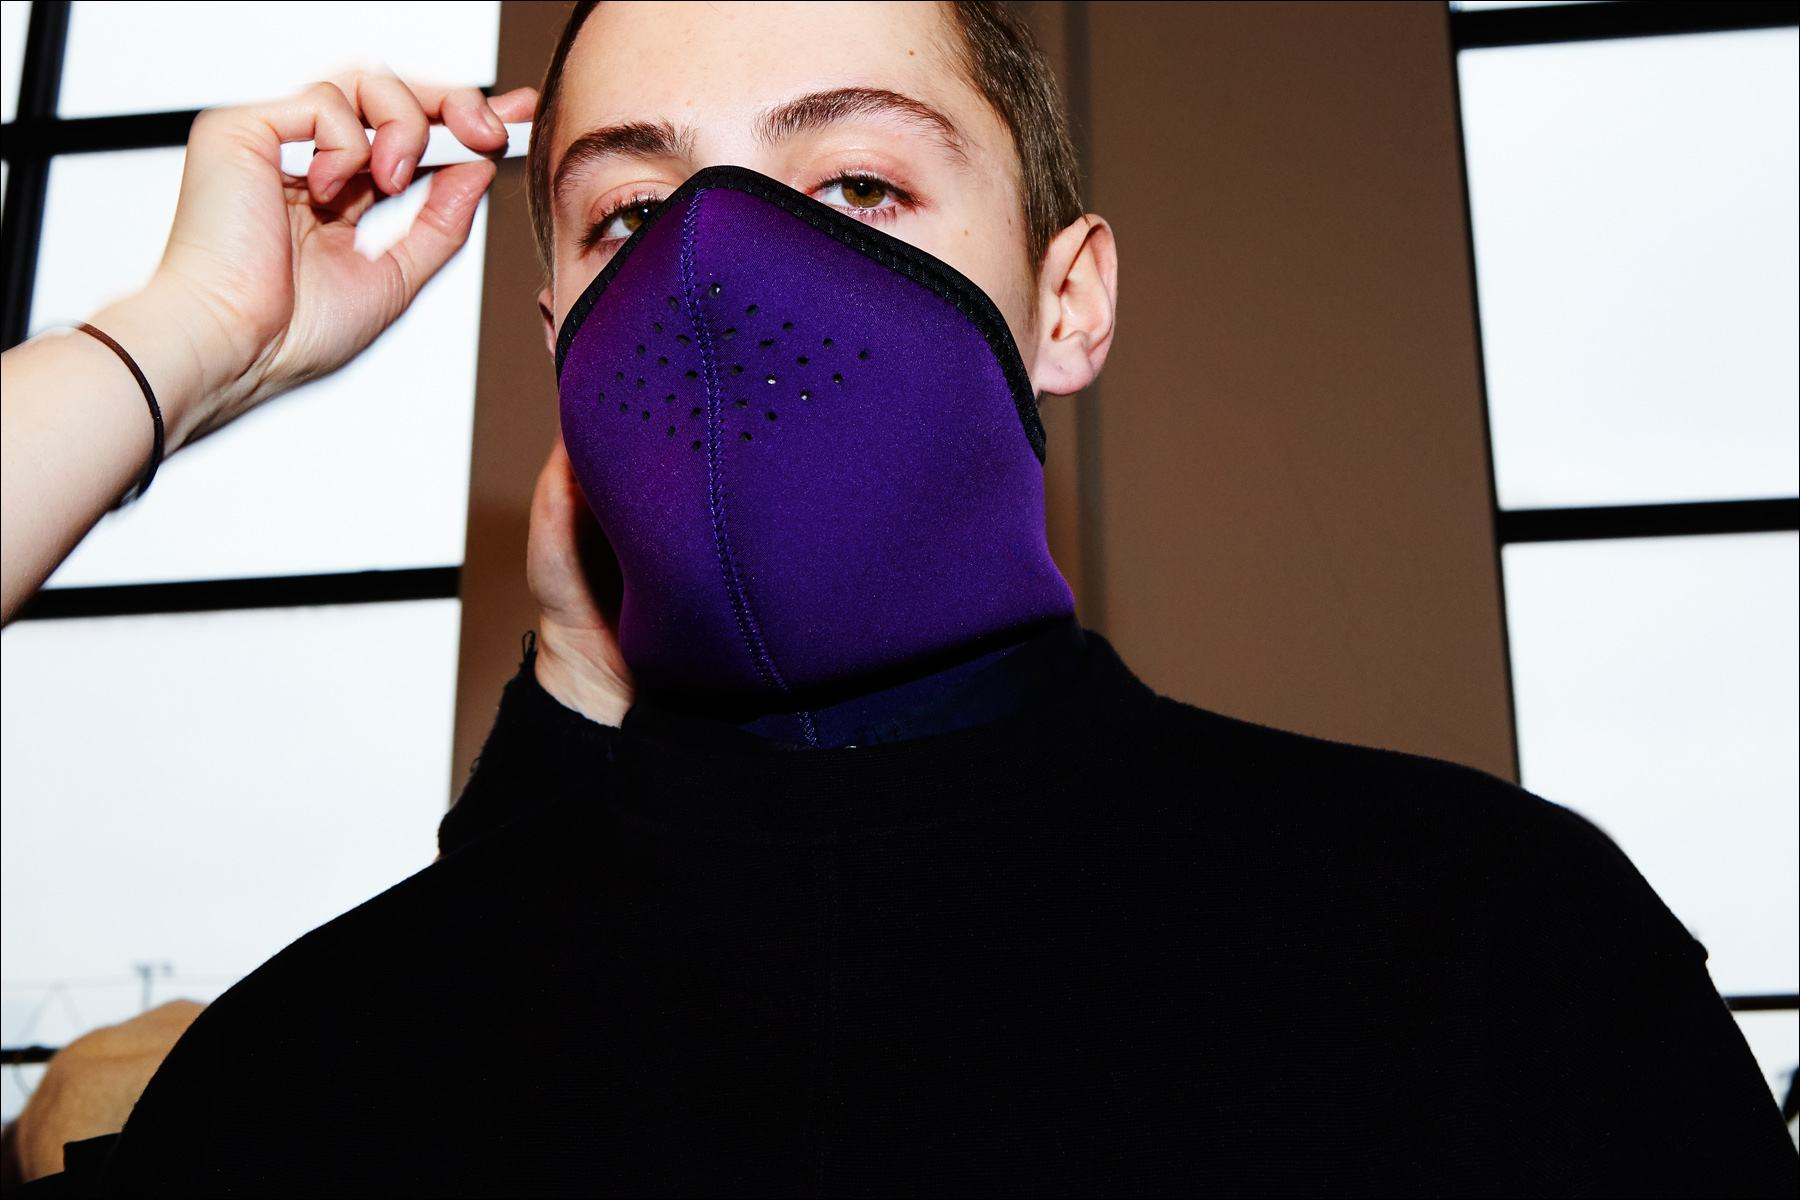 A model photographed in a purple face mask, backstage at Robert Geller A/W17 menswear show. Photography by Alexander Thompson for Ponyboy magazine New York.